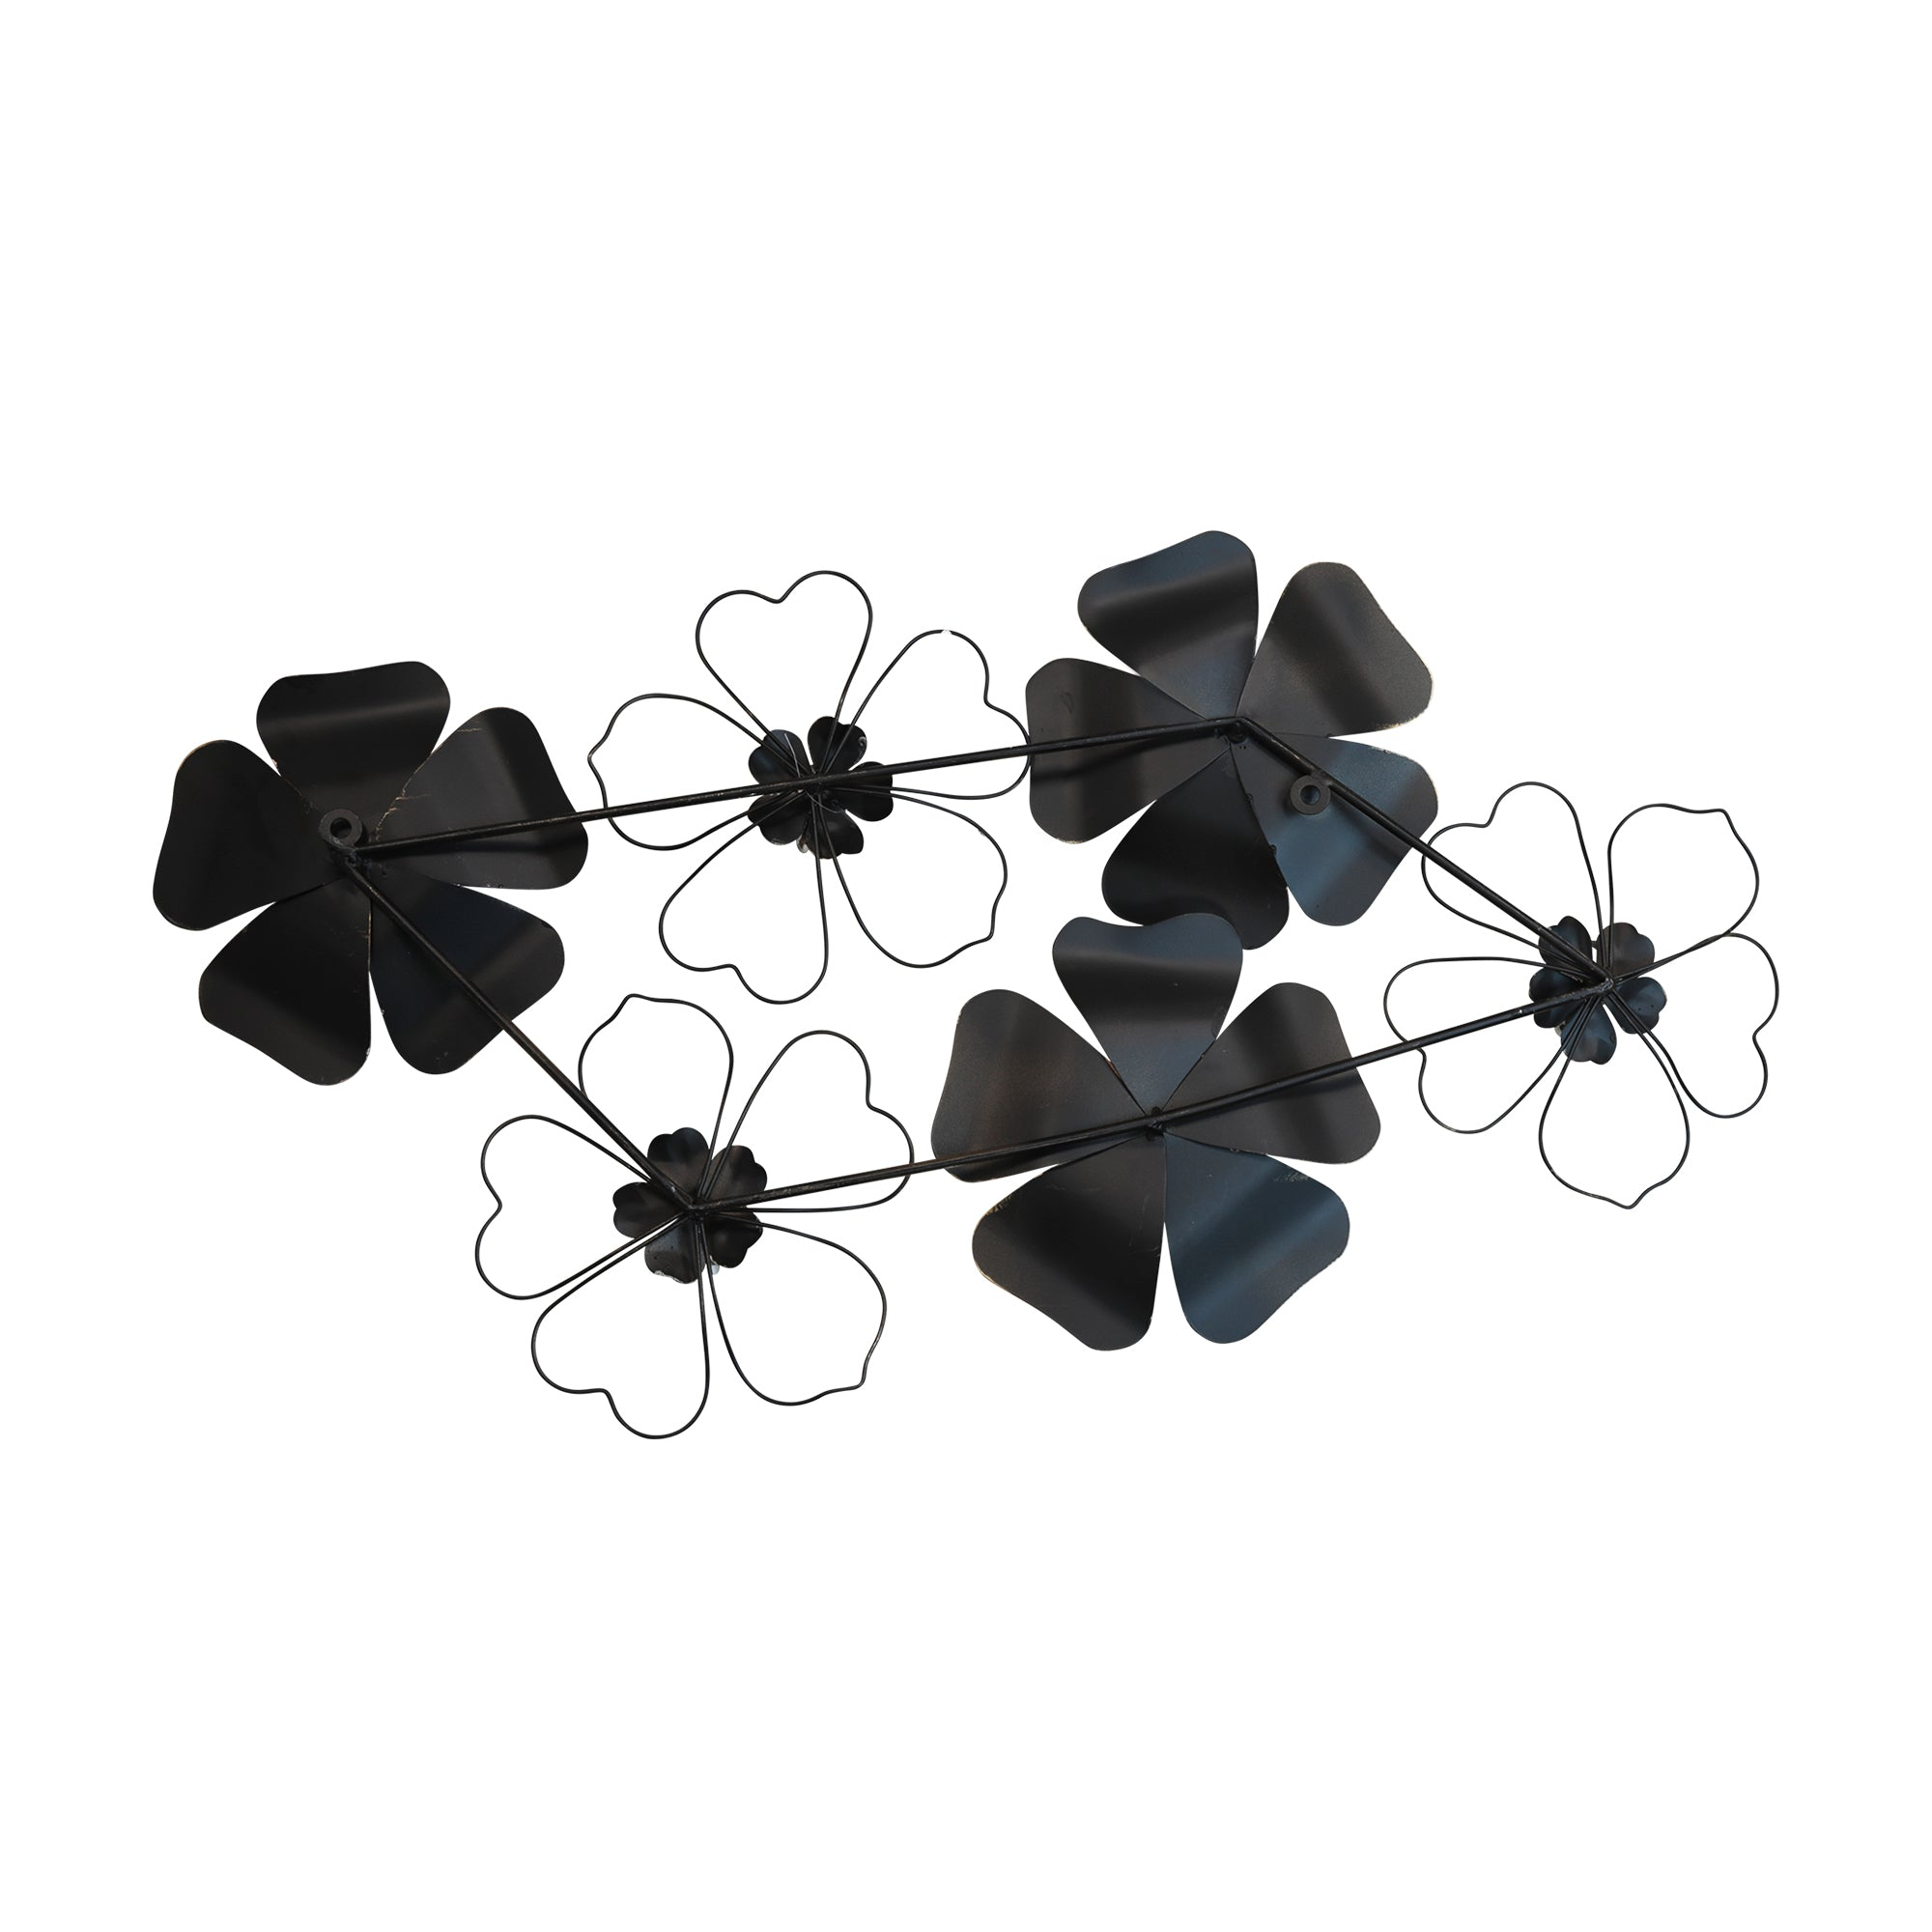 3D-Layered Flower Wall Art with Matte Finish